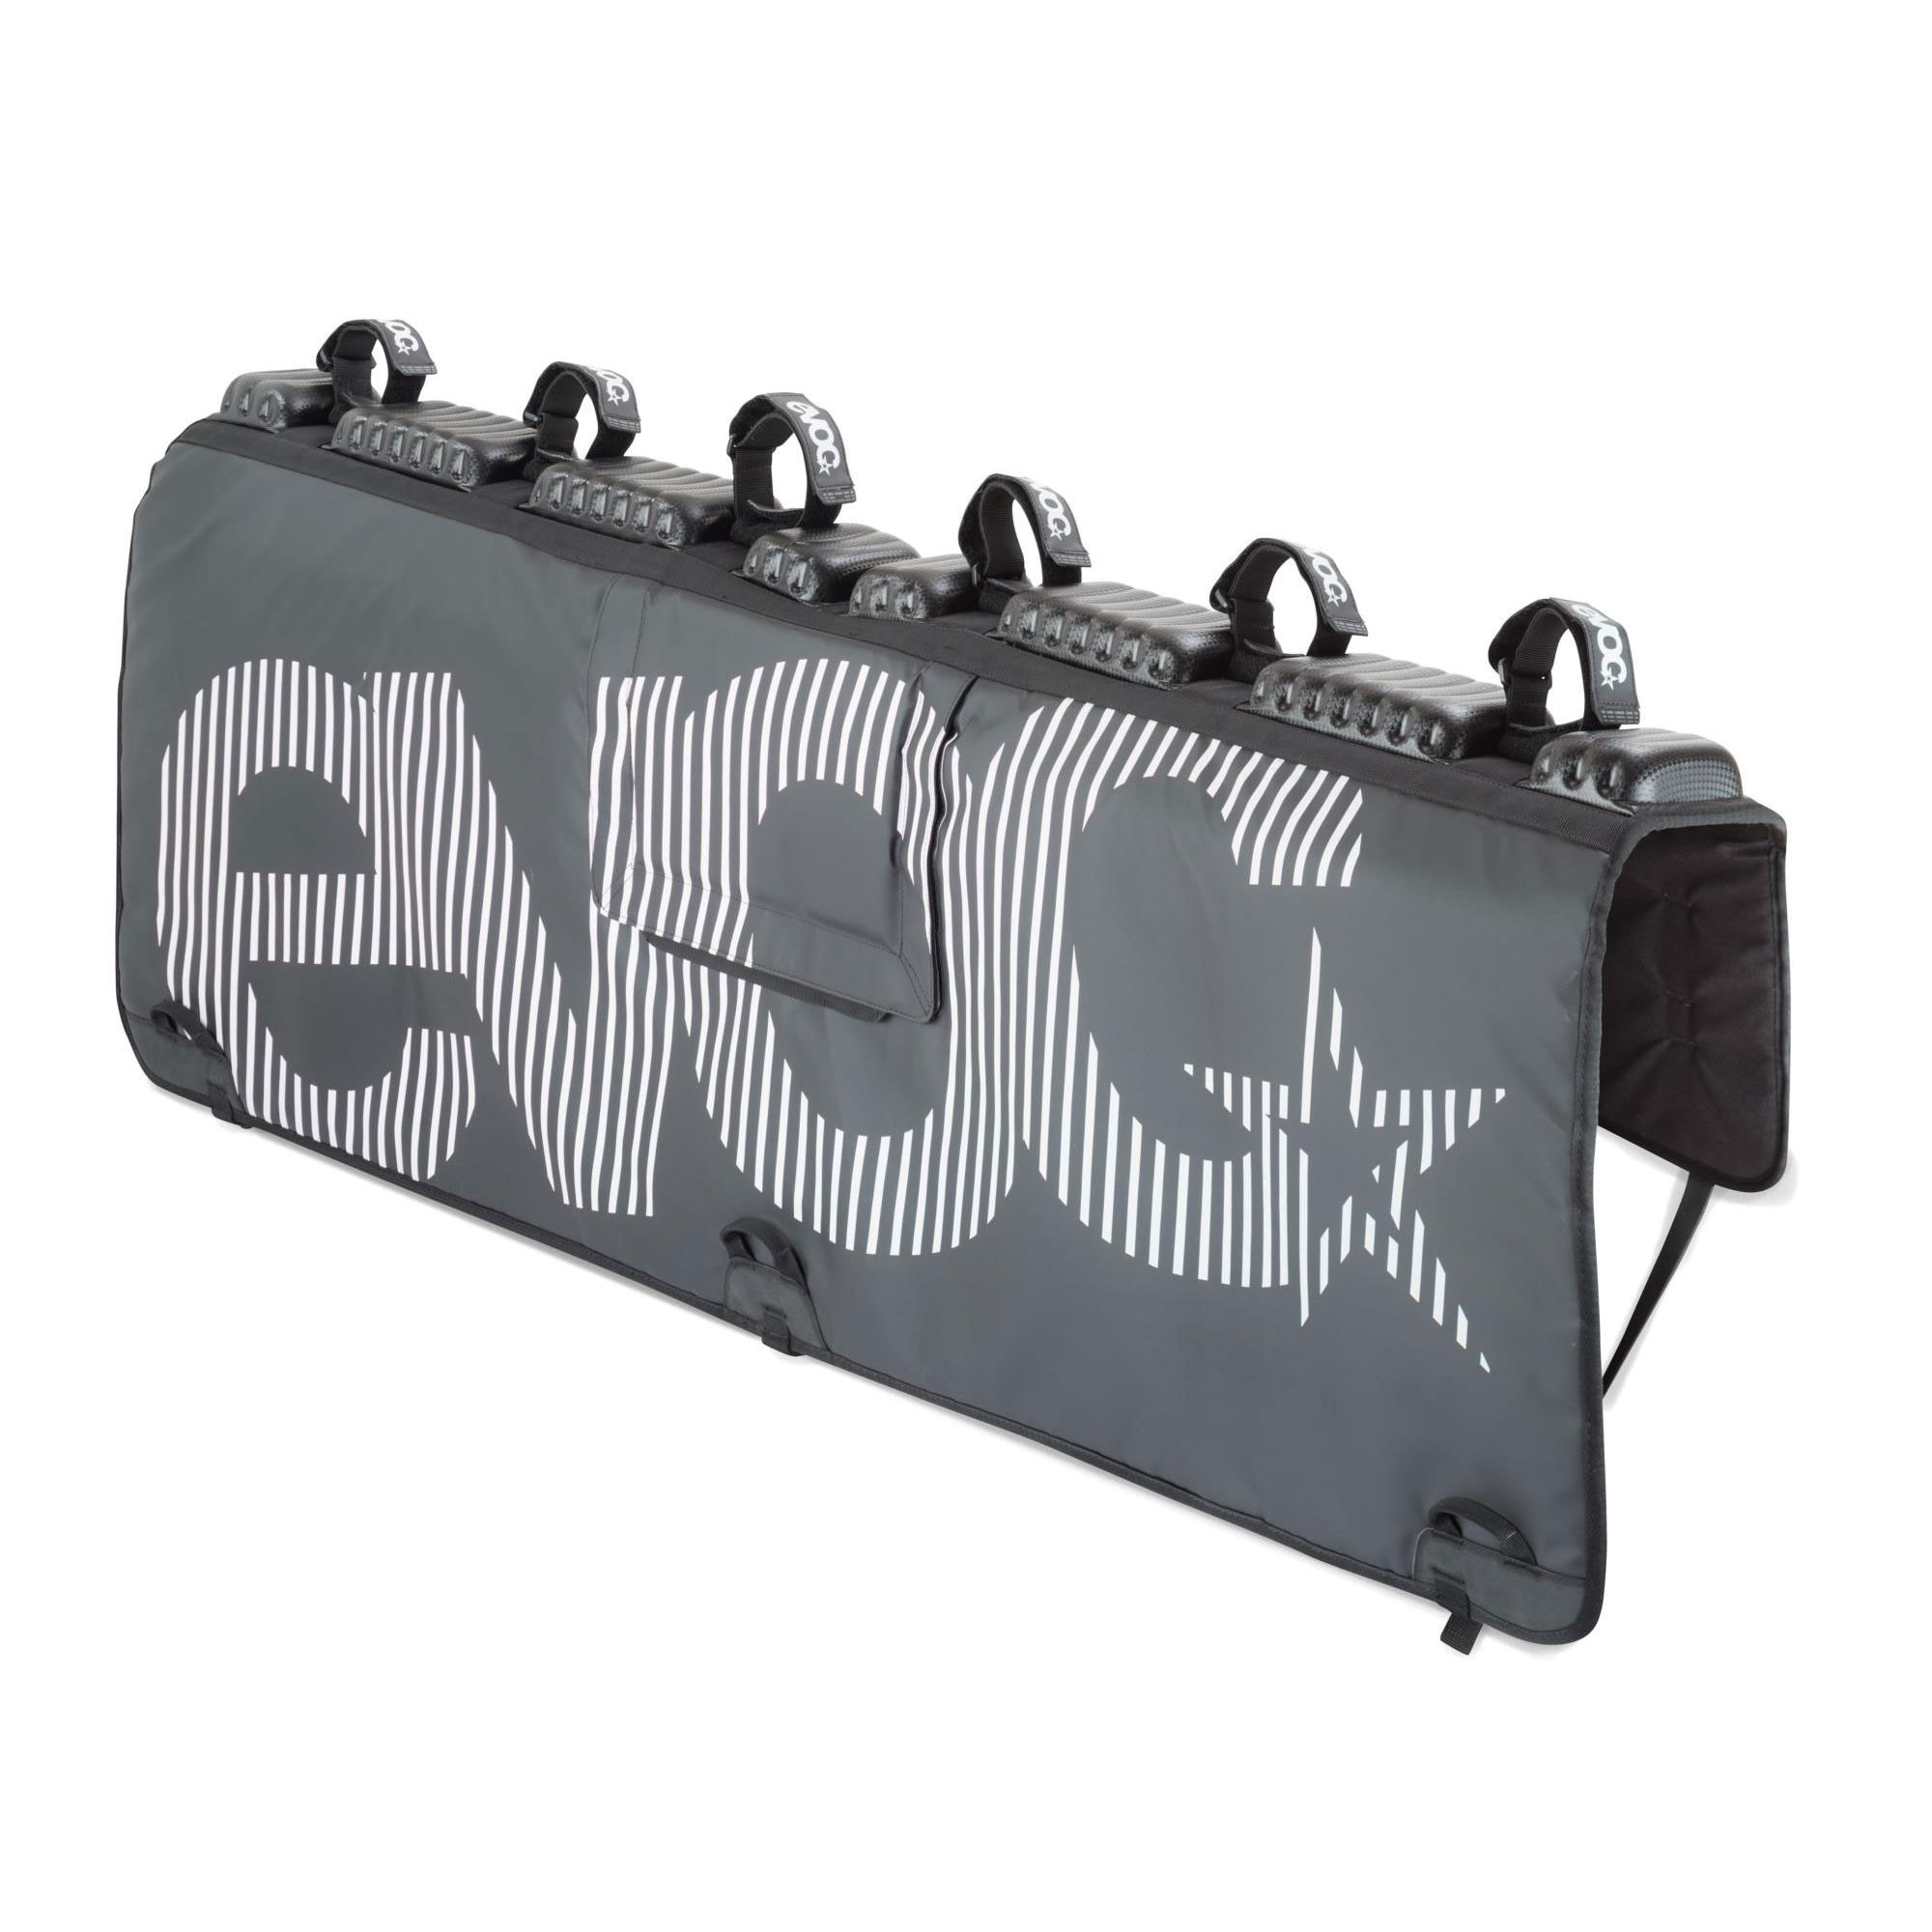 Wiggle evoc tailgate pad extra large soft bike bags for Housse protection velo